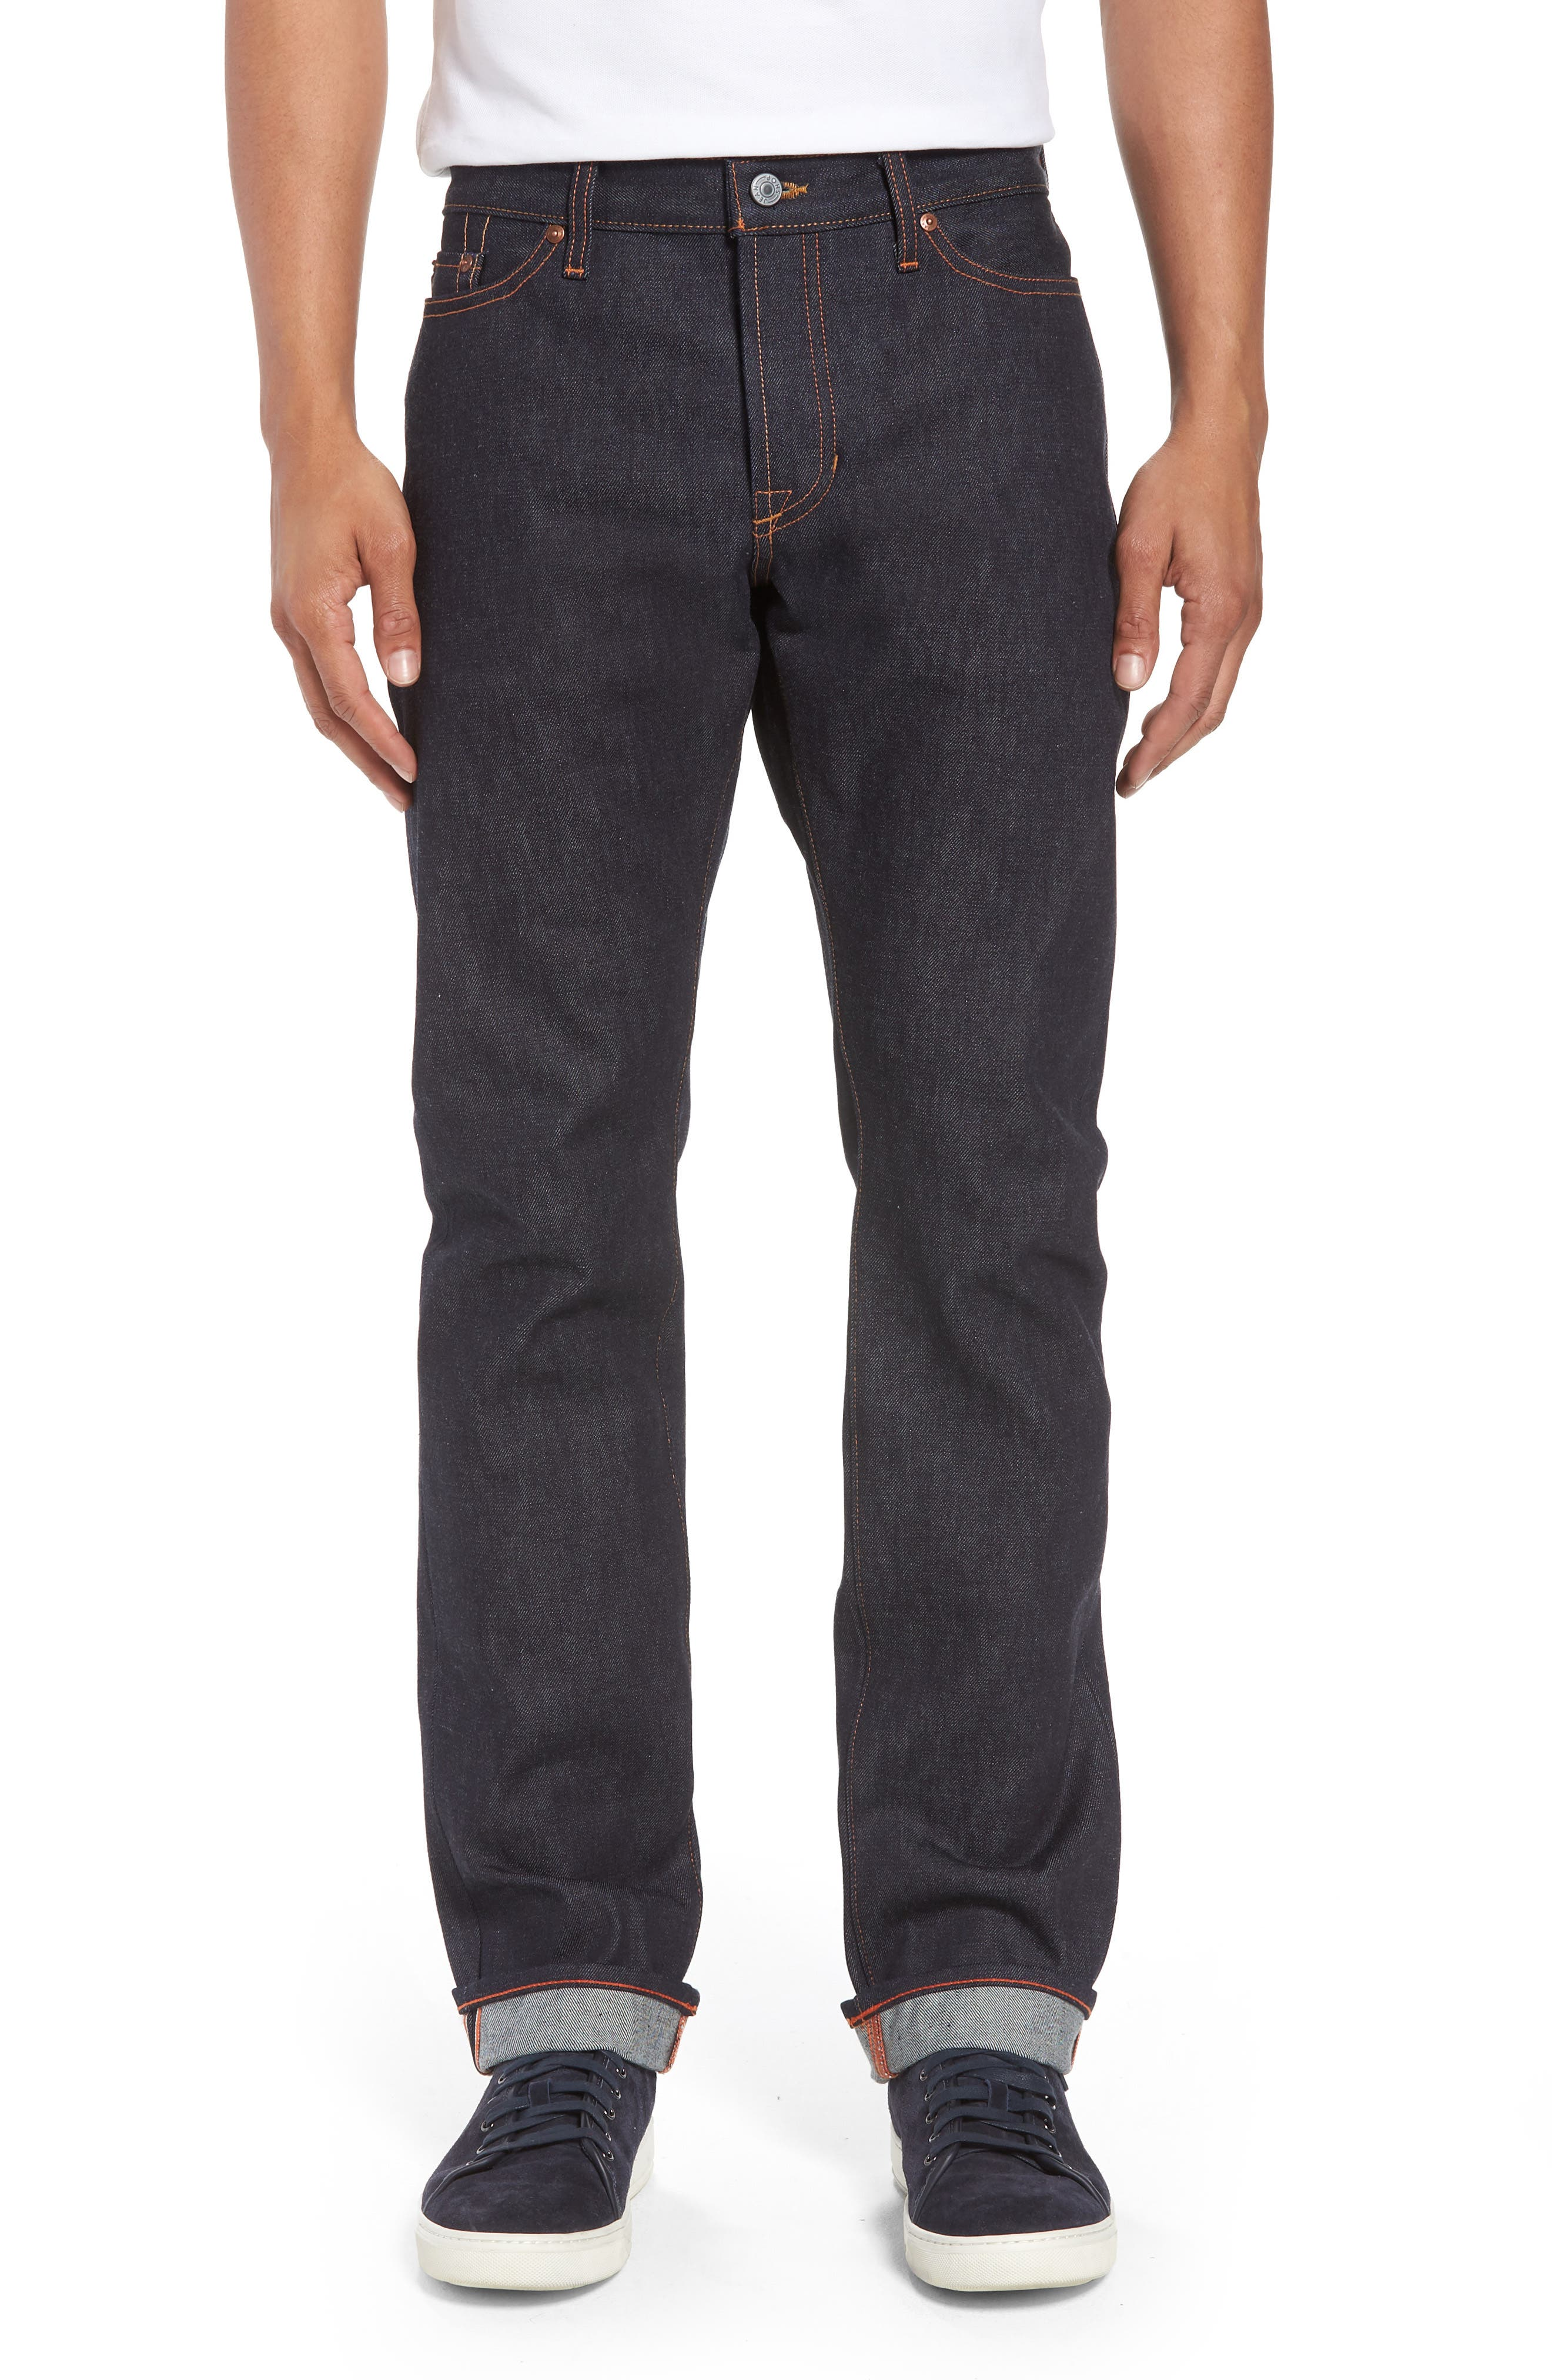 Bowie Slim Straight Leg Jeans,                         Main,                         color, Raw